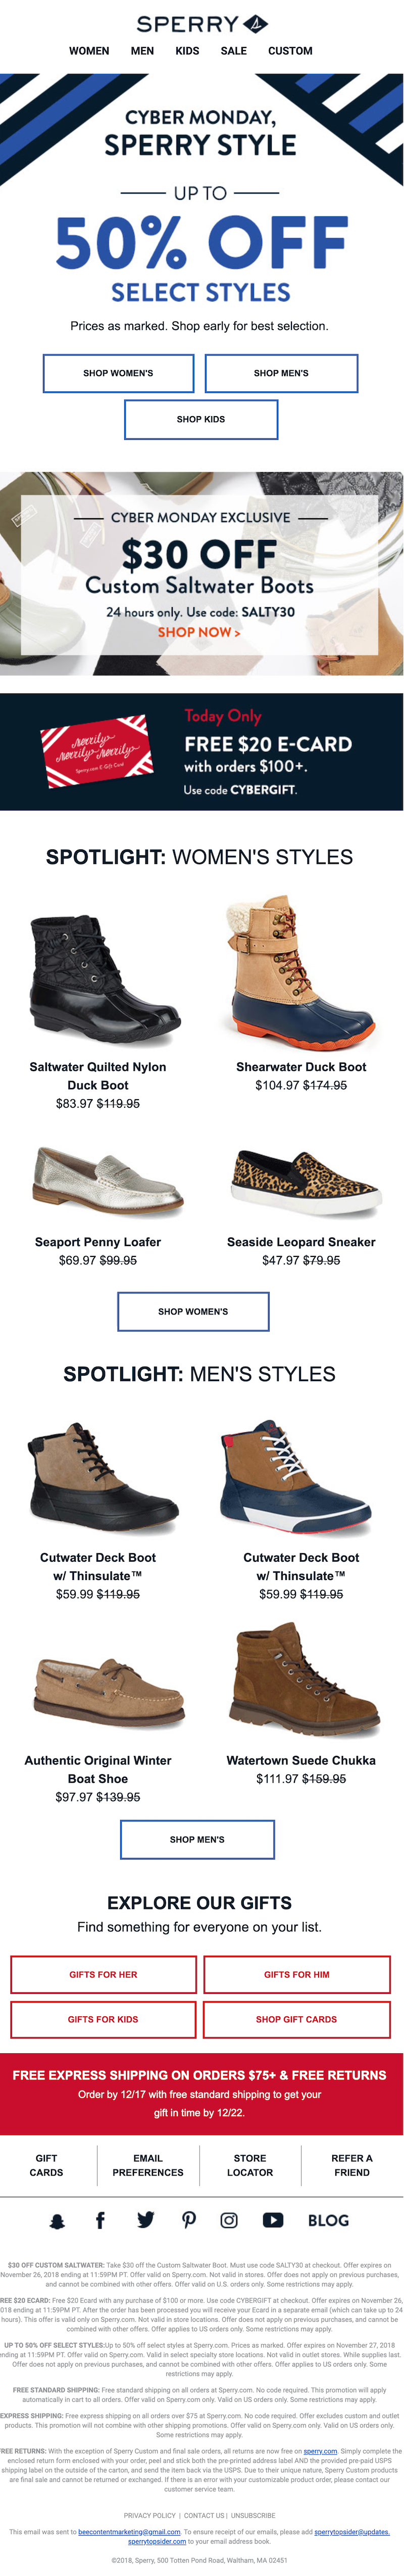 cyber monday sales email